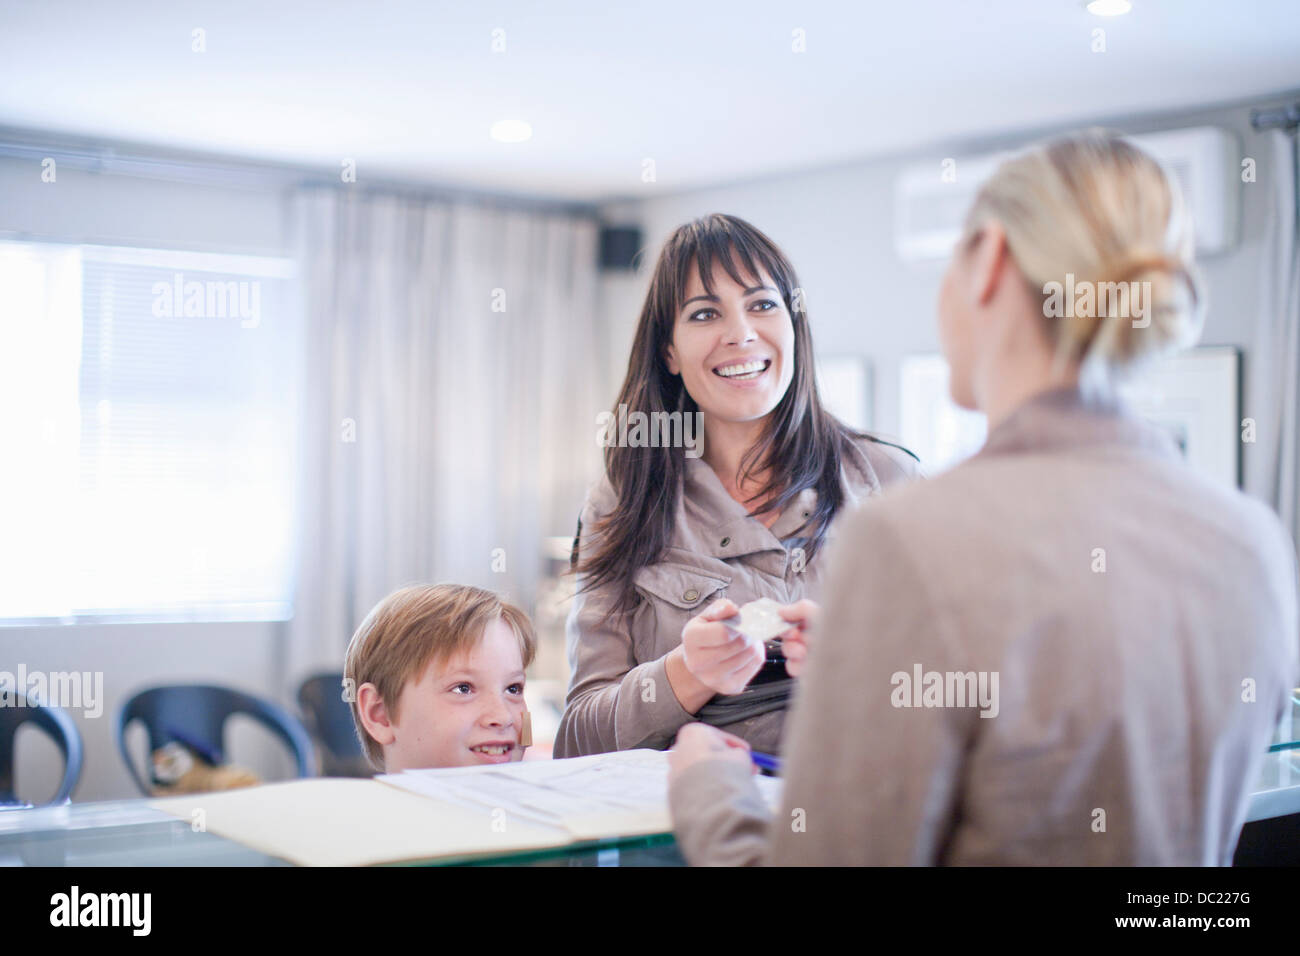 Mother and son making appointment at hospital reception - Stock Image